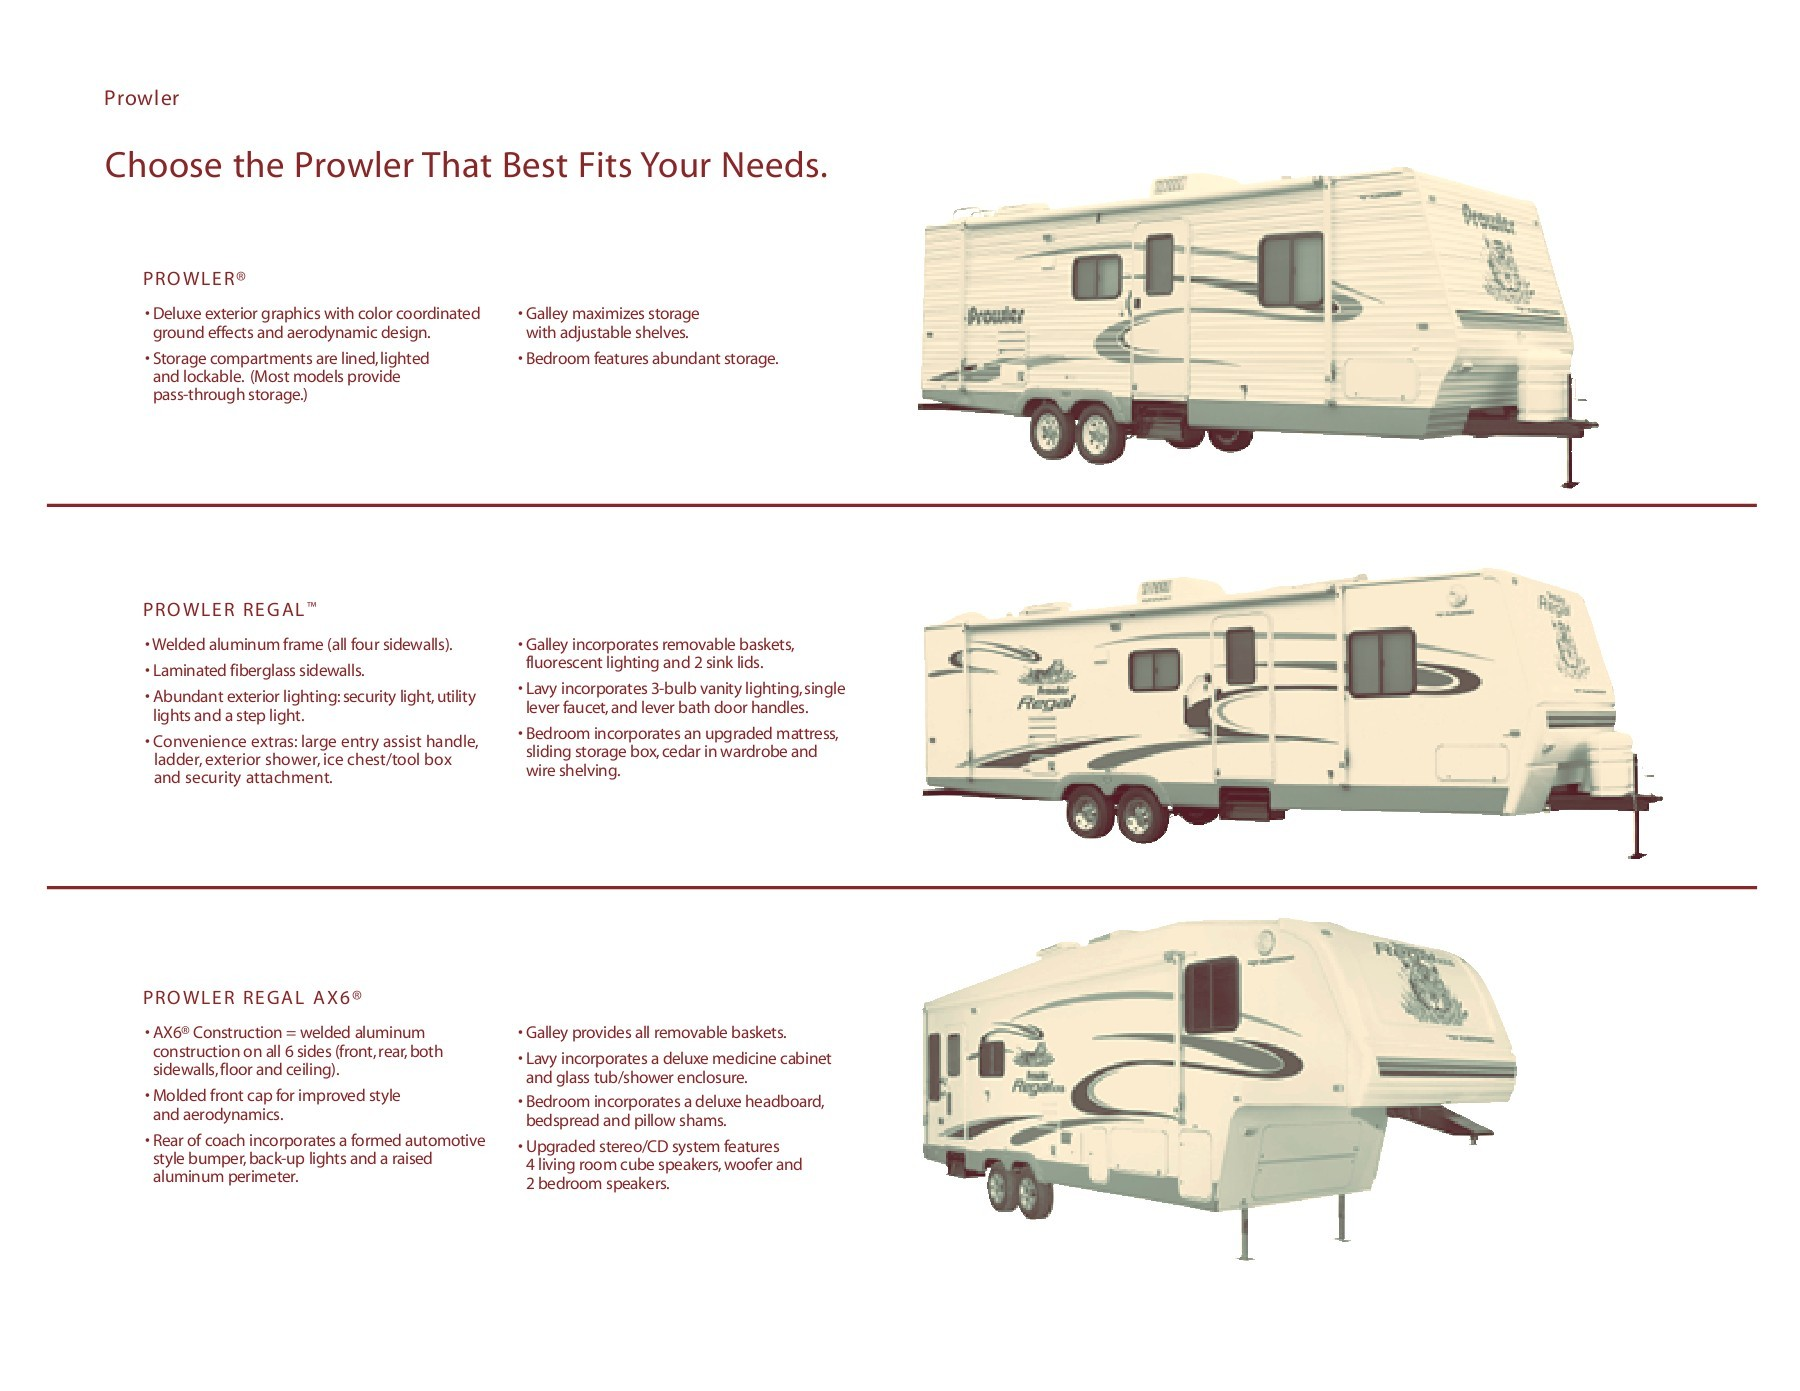 hight resolution of 2005 fleetwood prowler brochure 1 rvusa com pages 1 20 text version fliphtml5